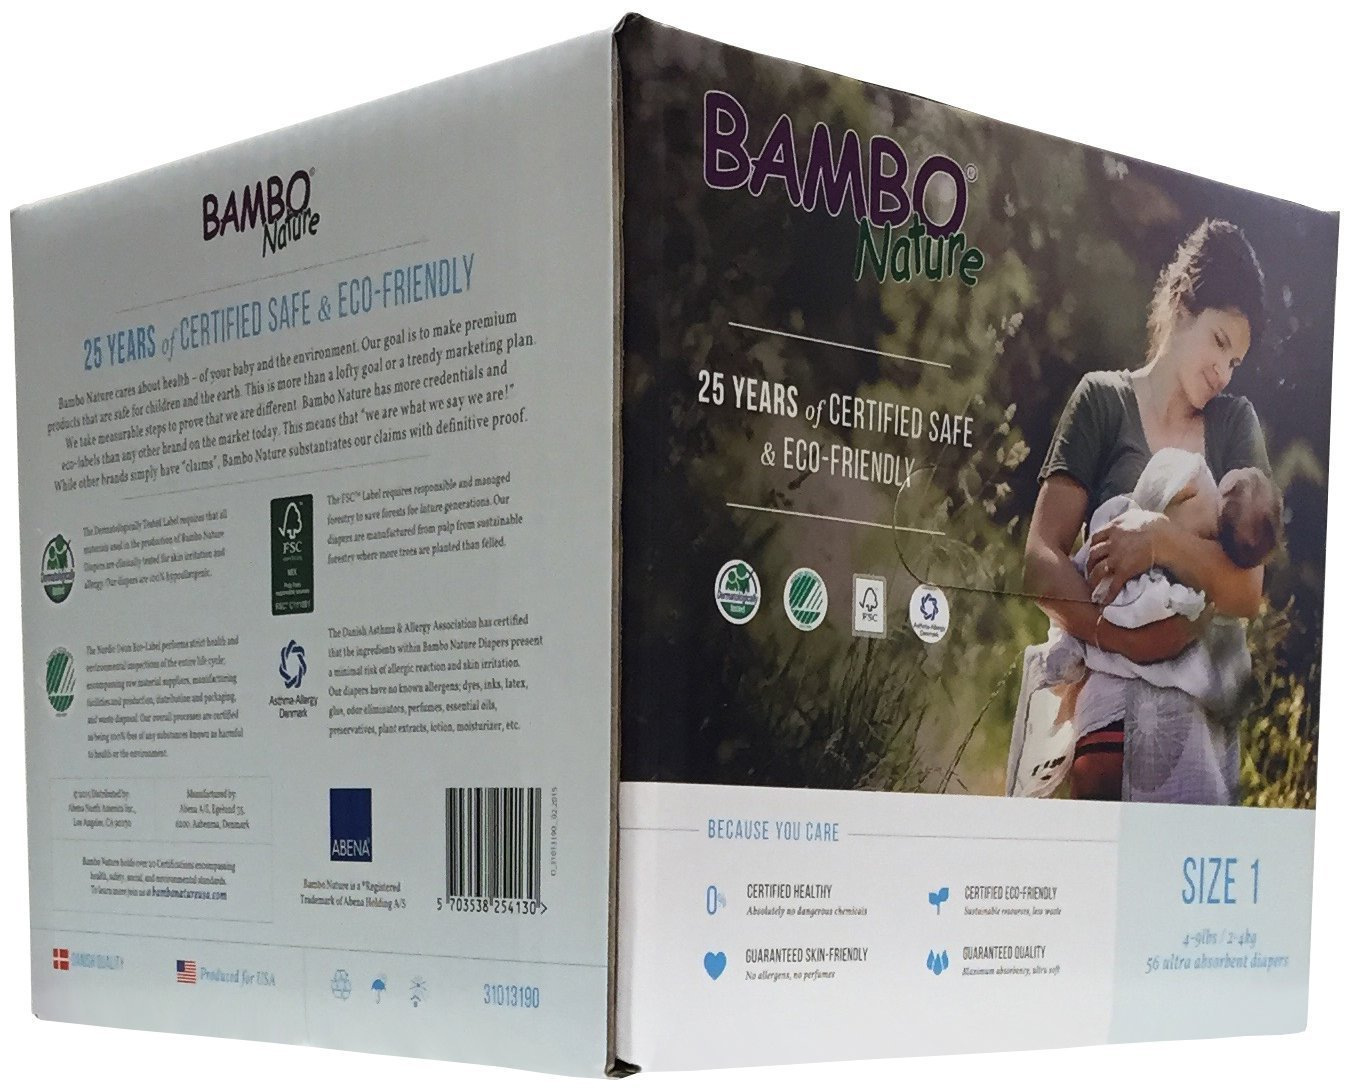 Size 6 XL Pack of 6 Bambo Nature Premium Baby Diapers 22 Count